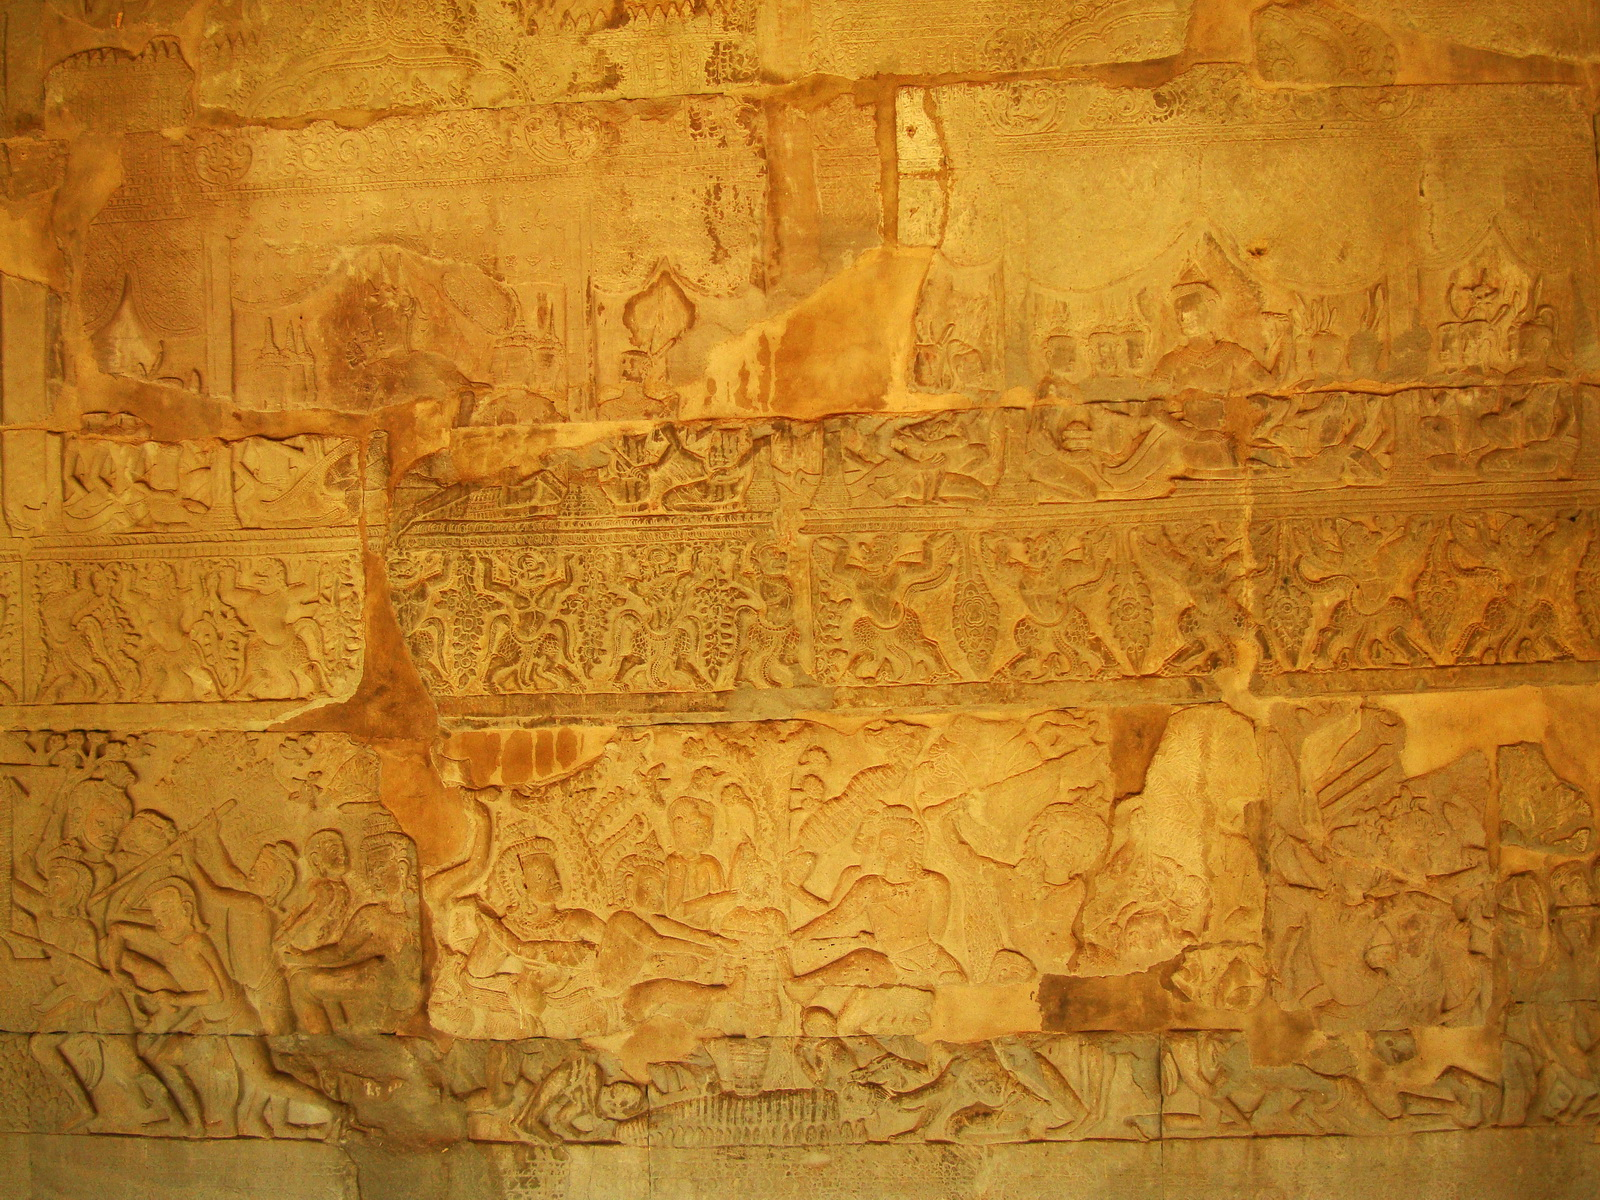 Angkor Wat Bas relief S Gallery E Wing Heavens and Hells 76